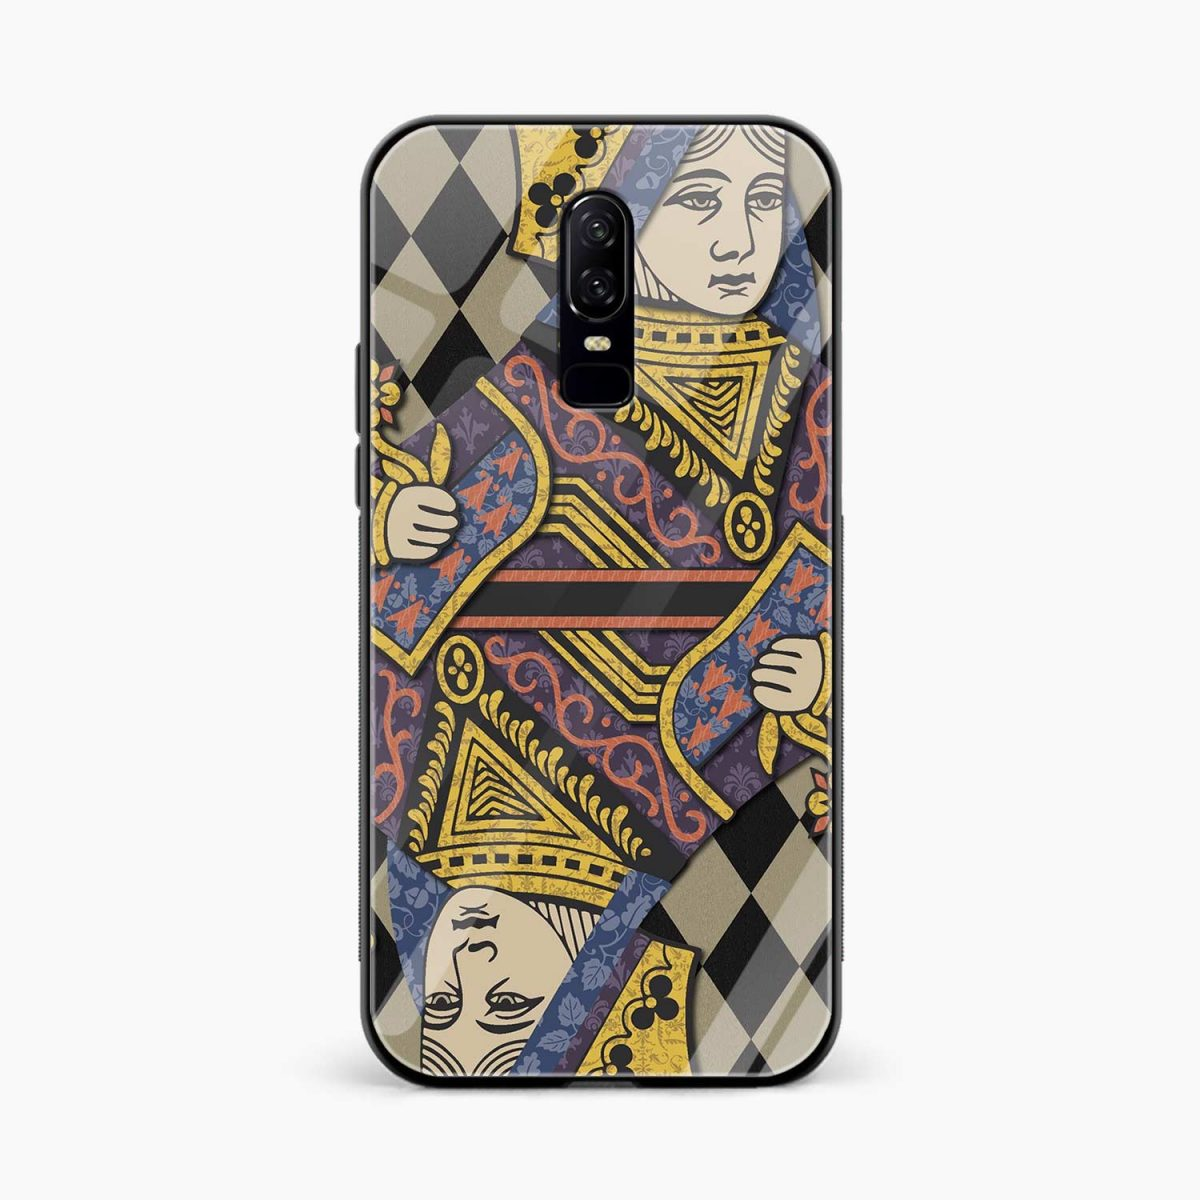 Queen front view oneplus 6 back cover